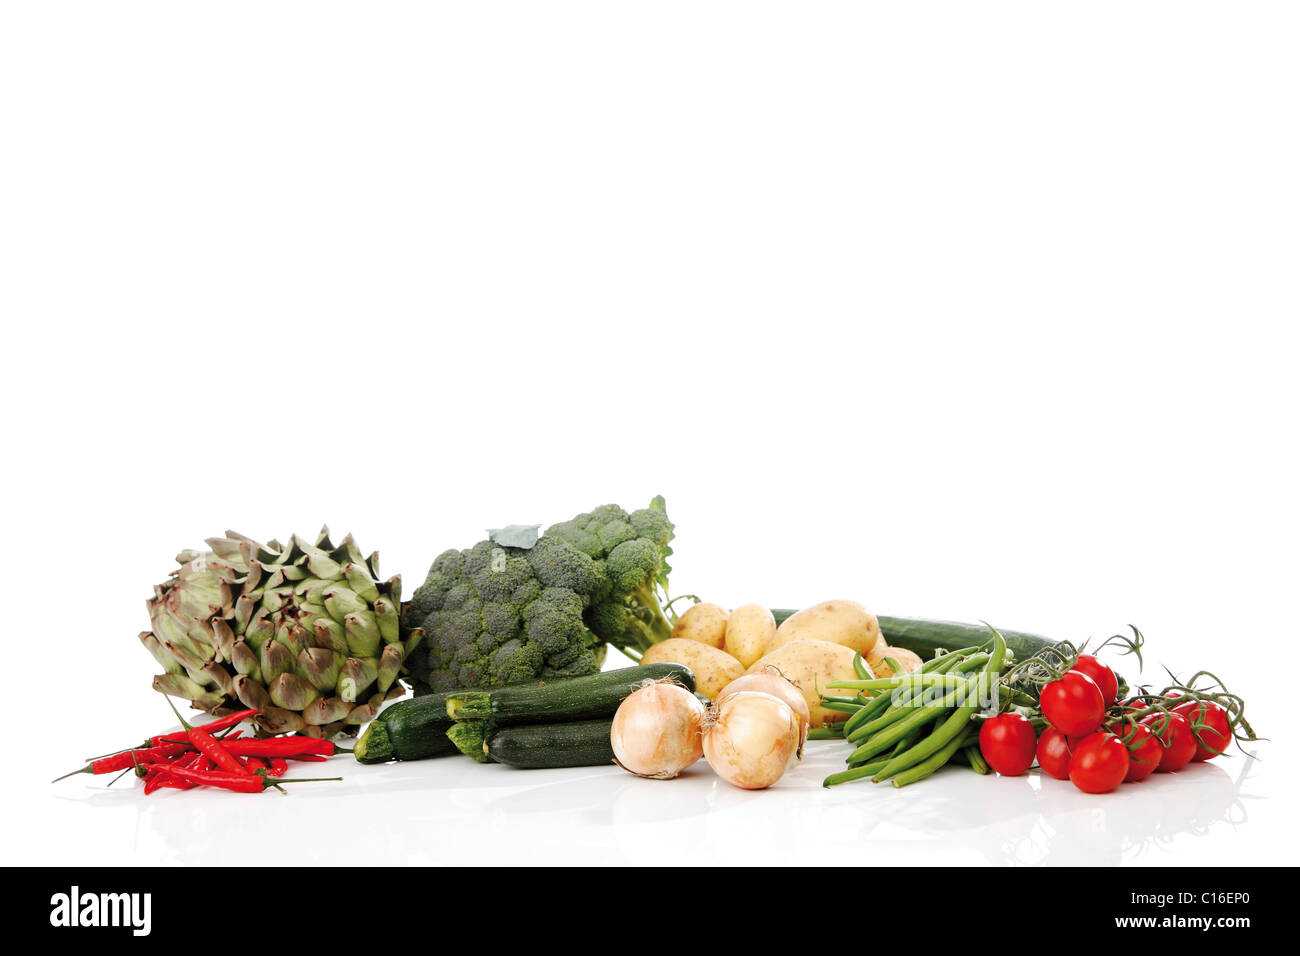 Mixed vegetables, artichokes, broccoli, potatoes, zucchini, onions, beans, cucumber, tomatoes and chillies Stock Photo